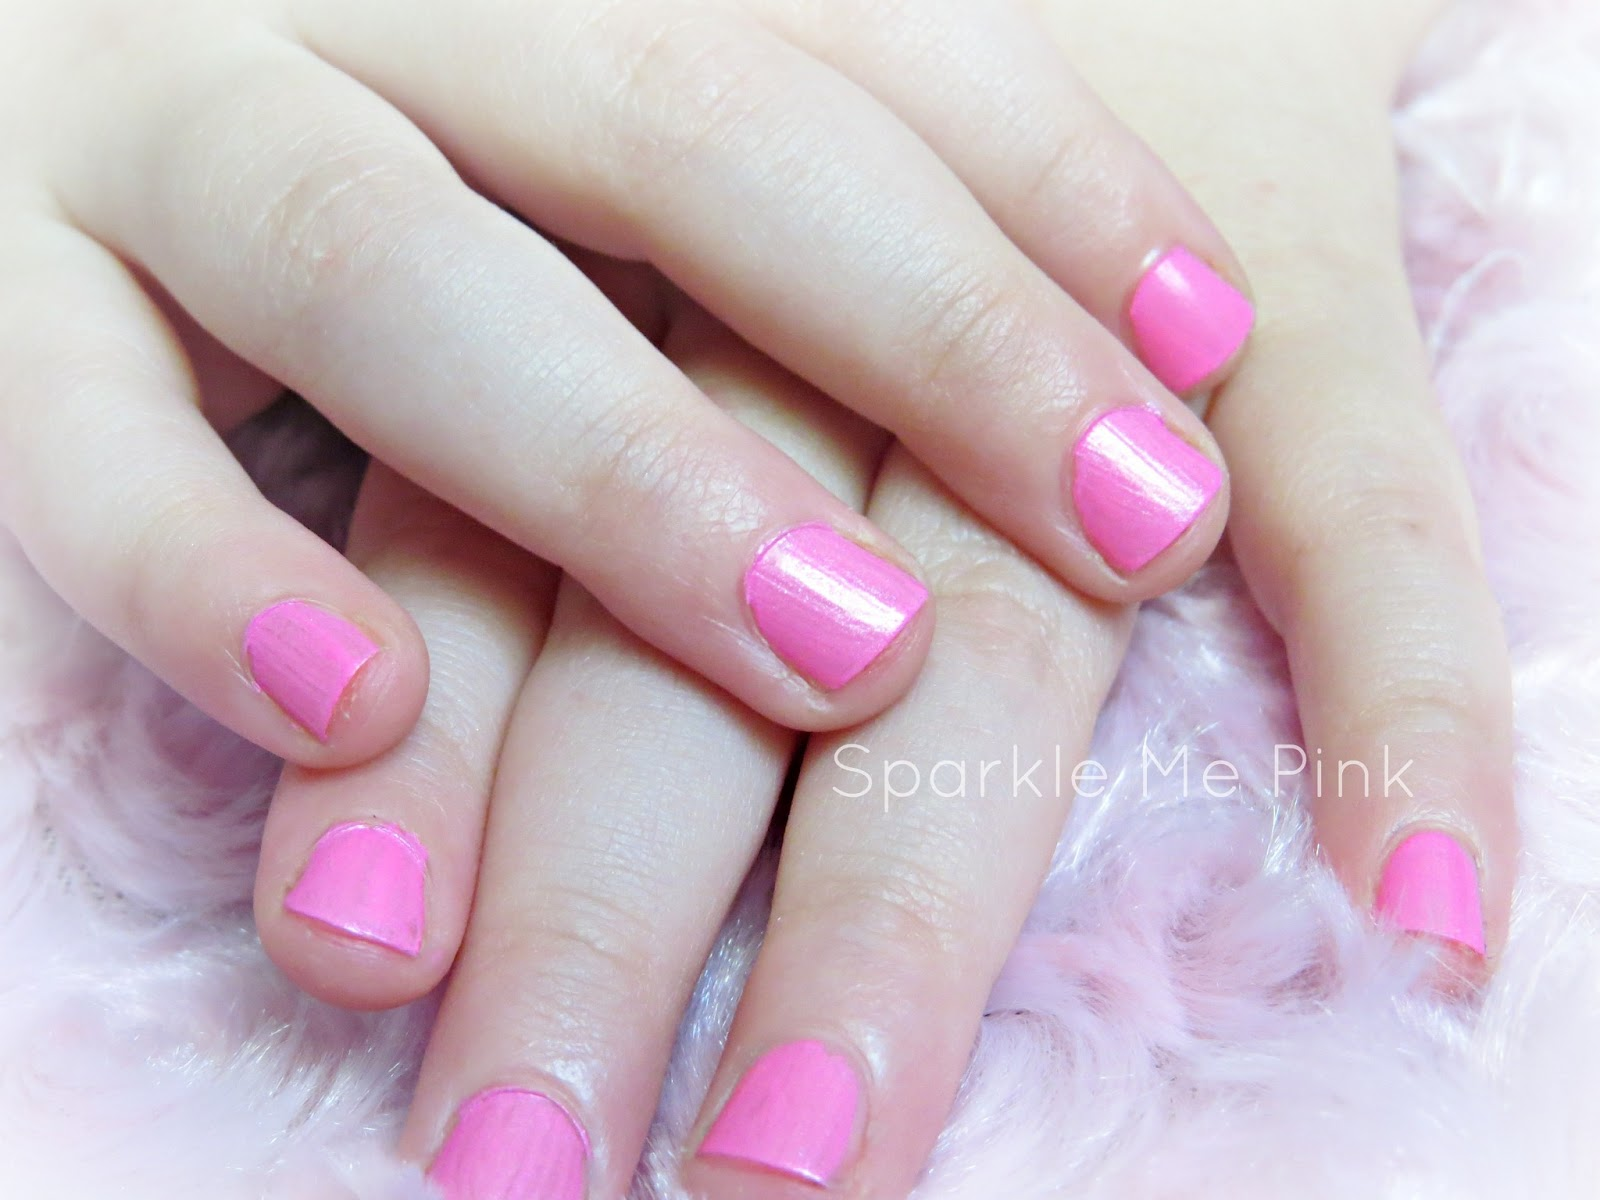 Sparkle Me Pink: How To Give Your 2 Year Old A Manicure